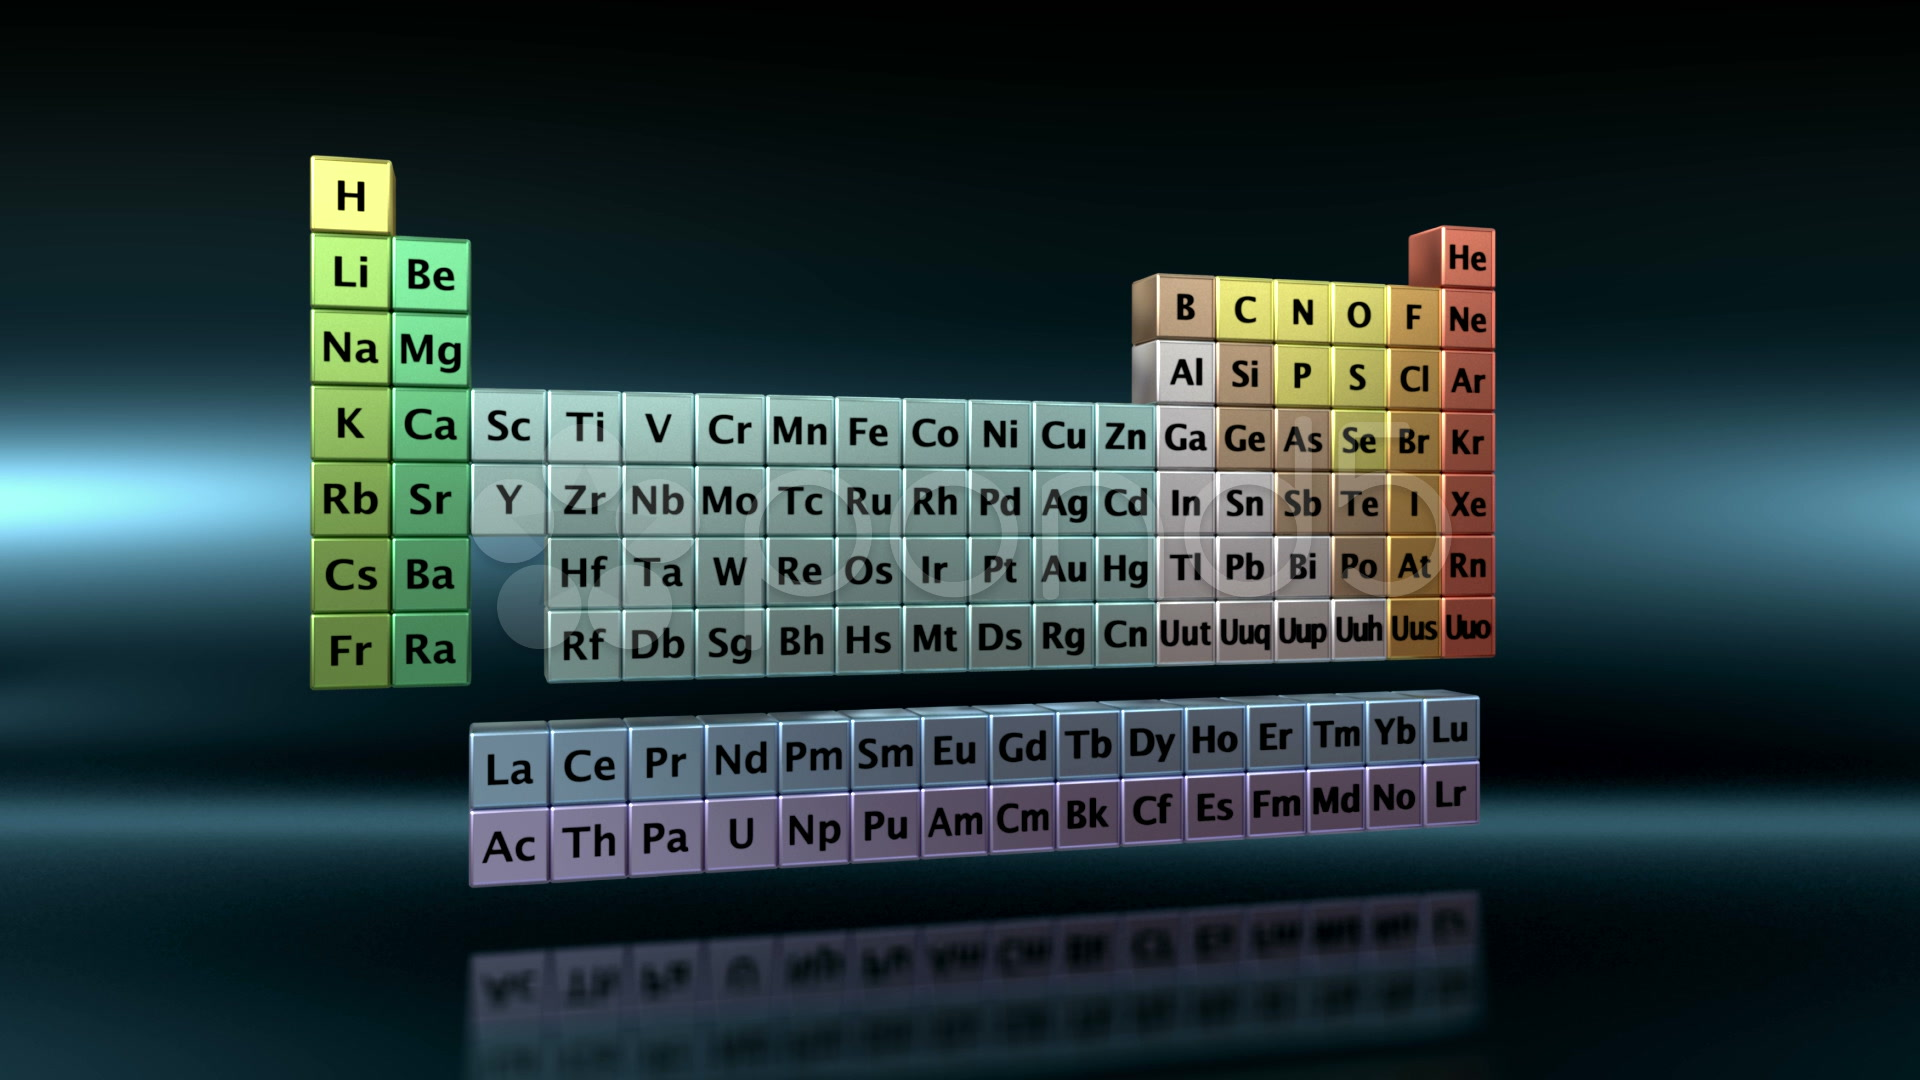 Table of elements wallpaper wallpapersafari prevstill periodic table of elements with names wallpaper 1920x1080 urtaz Choice Image